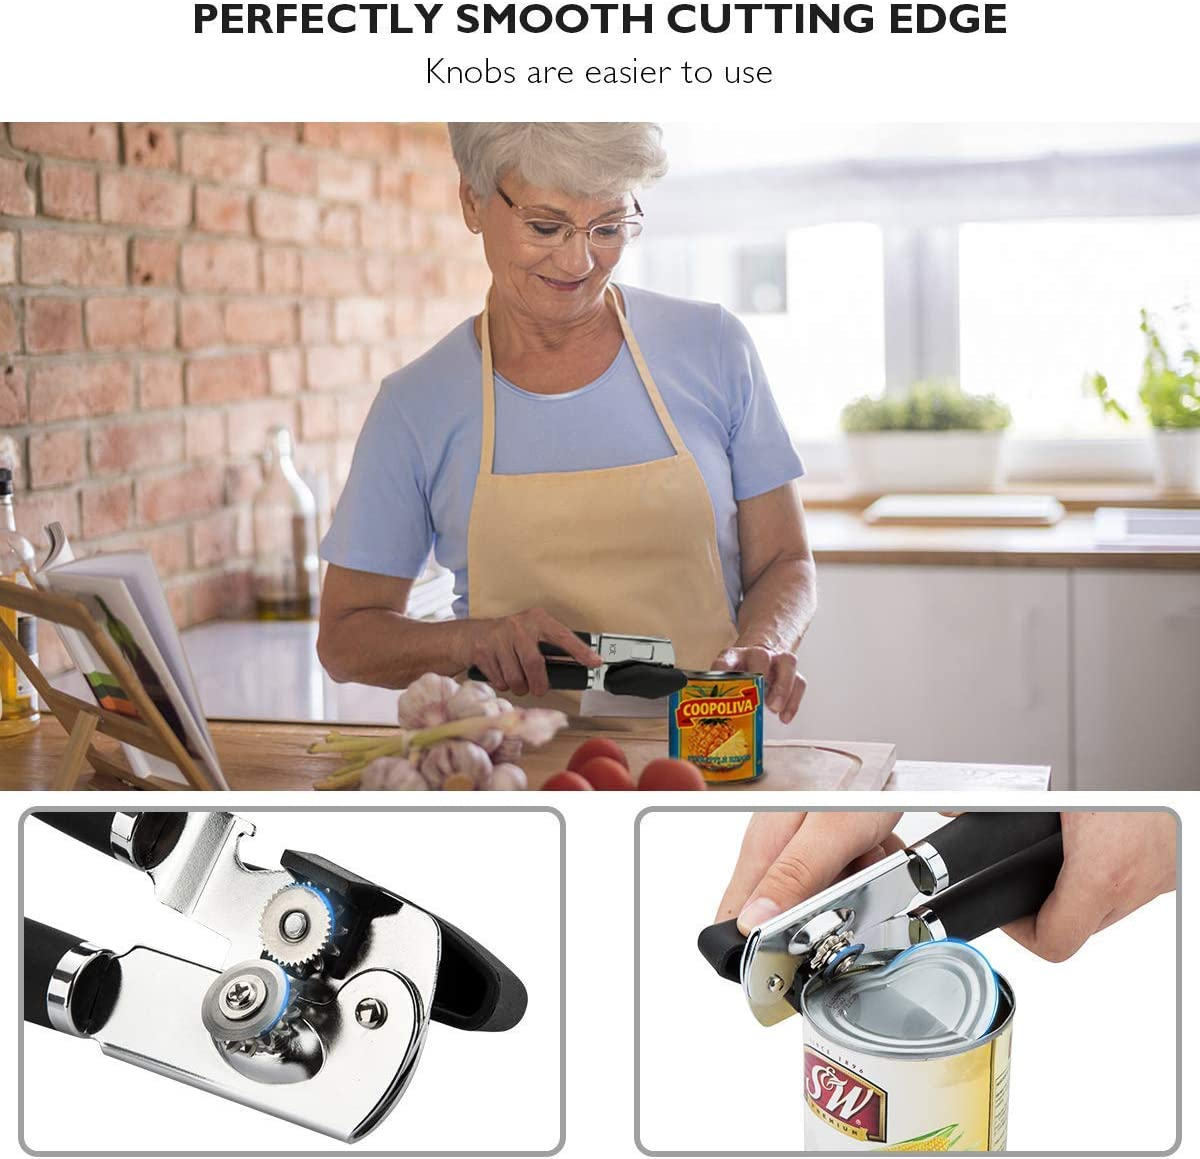 Carbon-Steel Blade for Safety Smooth Edge Heavy Duty 3-in-1 Bottle Opener Lever for Kitchen Restaurant Camping(Black) TOP Quality Stainless Steel Manual Tin Can Opener Can Opener